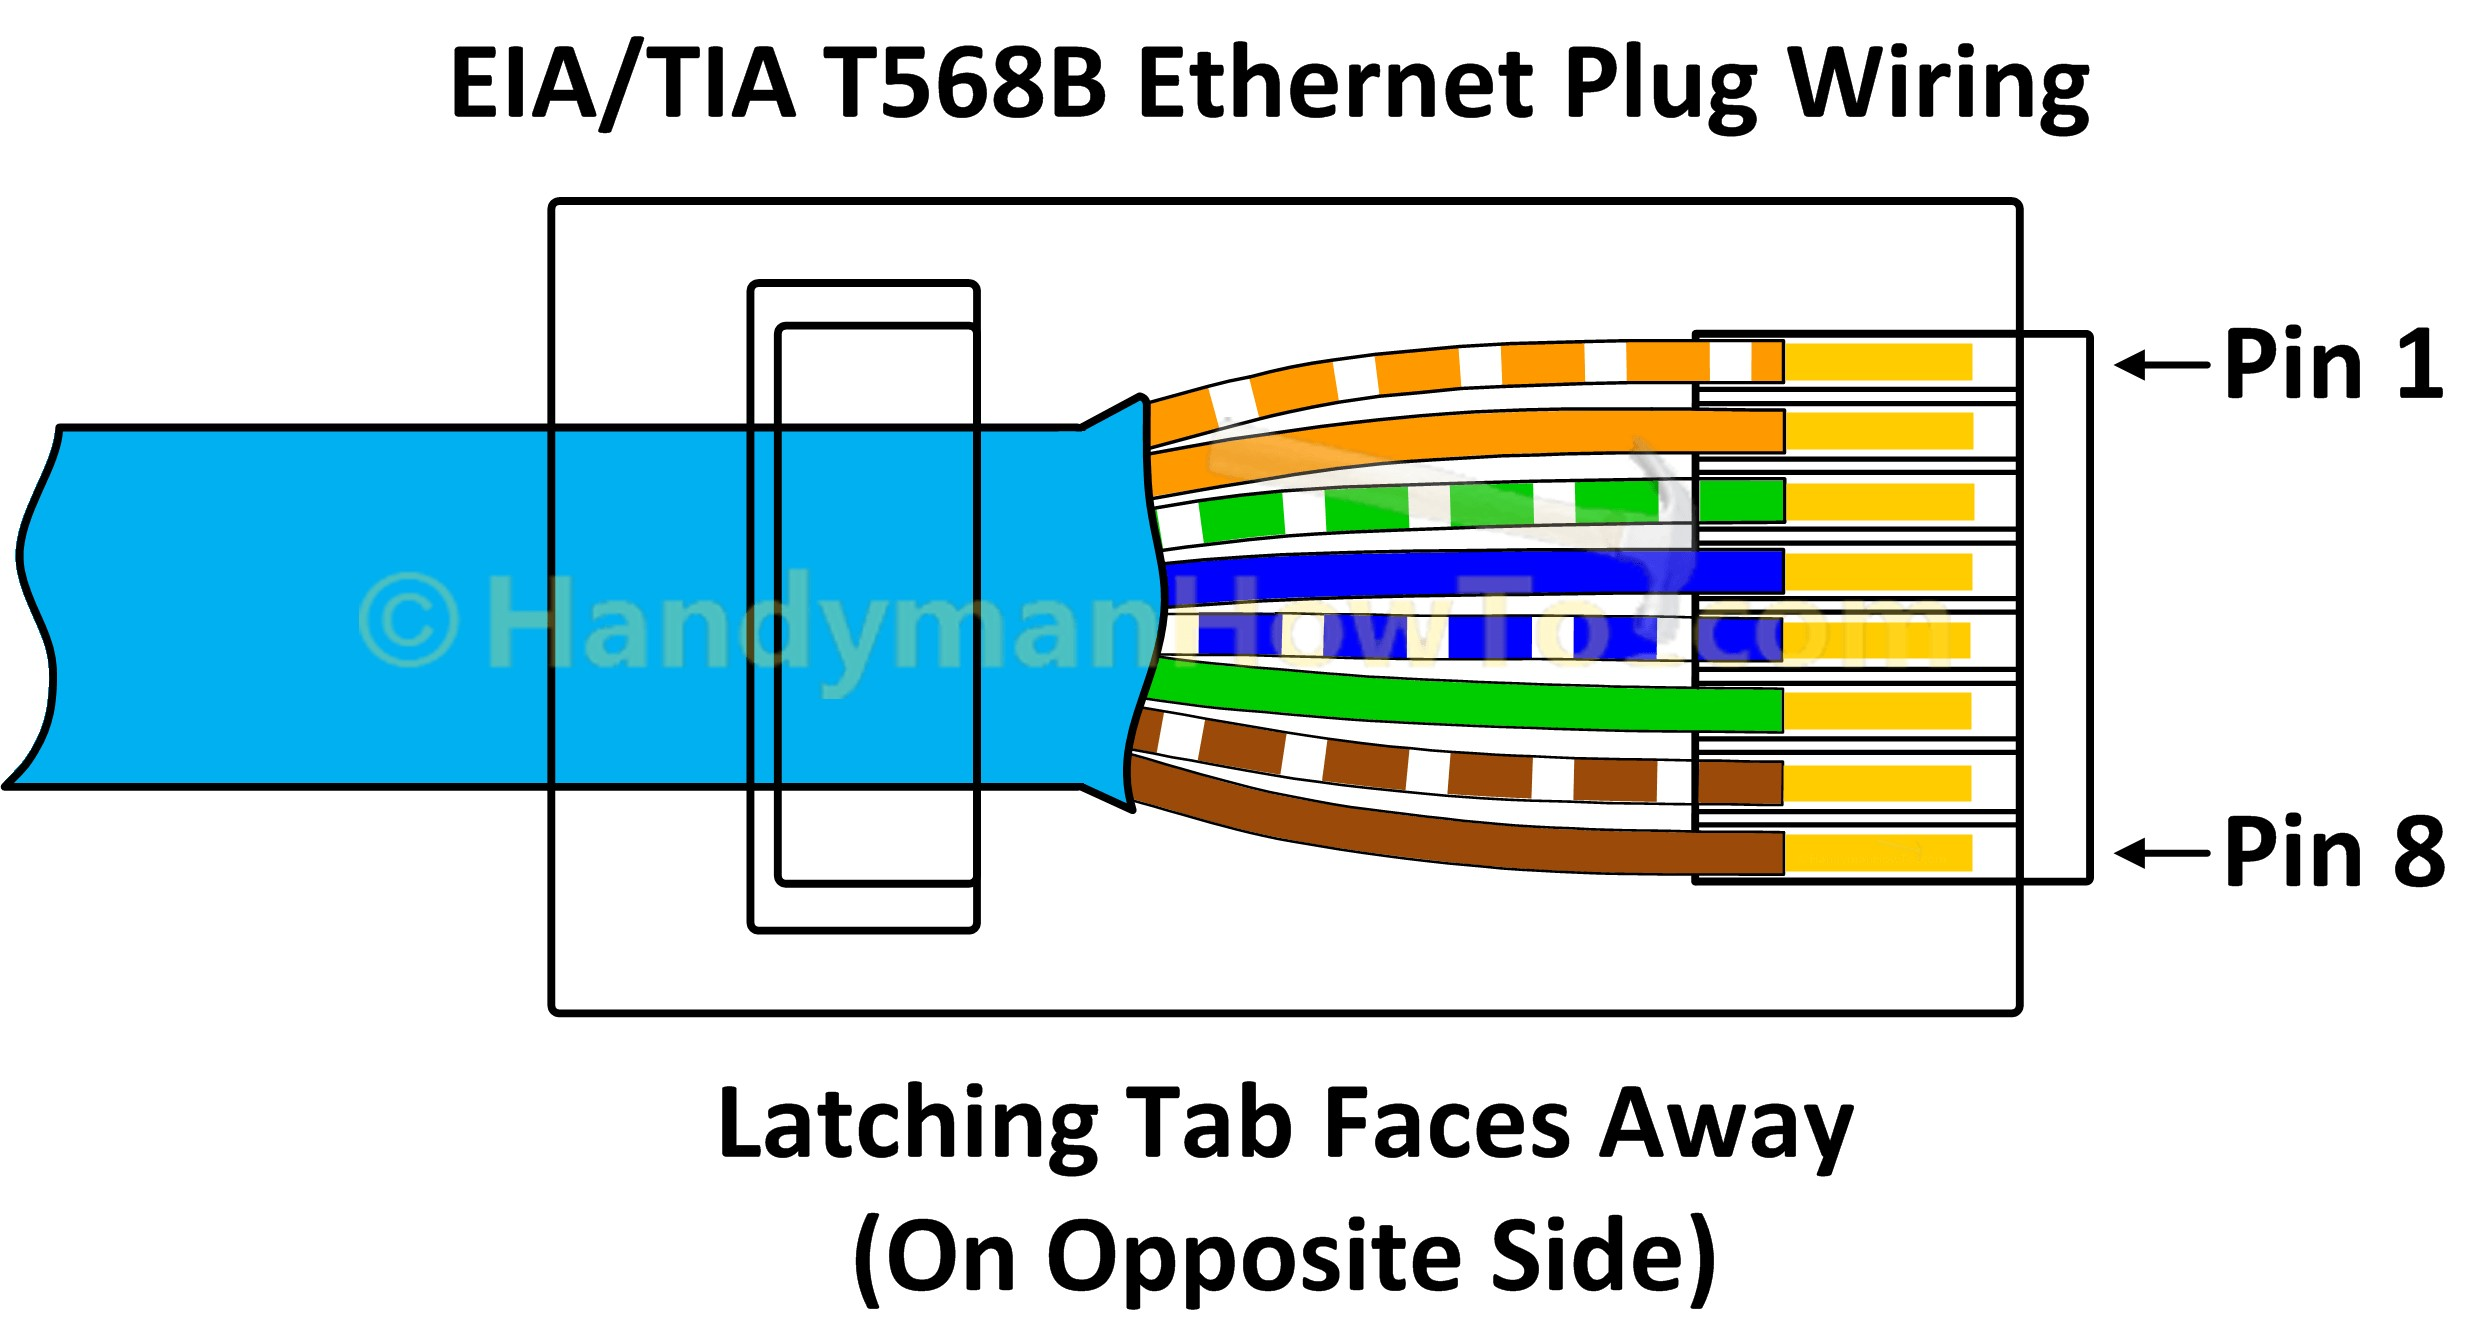 How To Make An Ethernet Network Cable Cat5e Cat6 New Wiring Best Cat 5e Diagram Ethernet Wiring Diagram